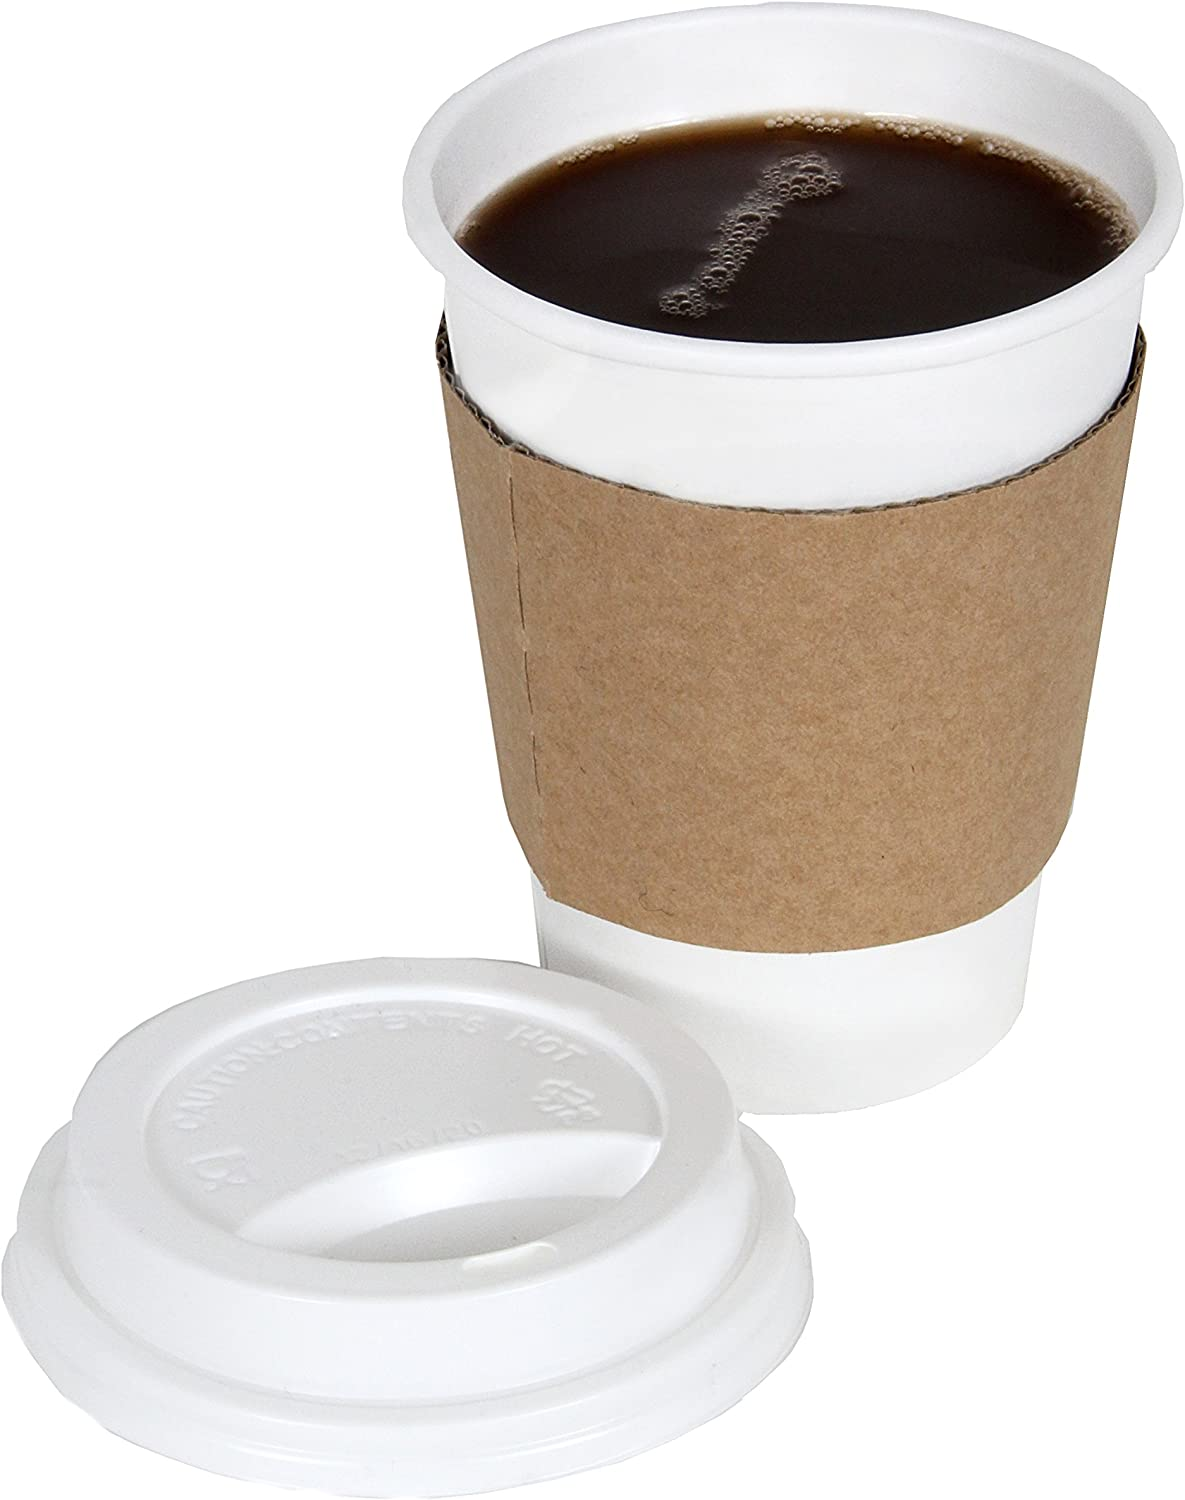 CucinaPrime 12oz White Disposable To-Go Paper Coffee/Hot Beverage Cups with White Lids and Sleeves- 50 Pack